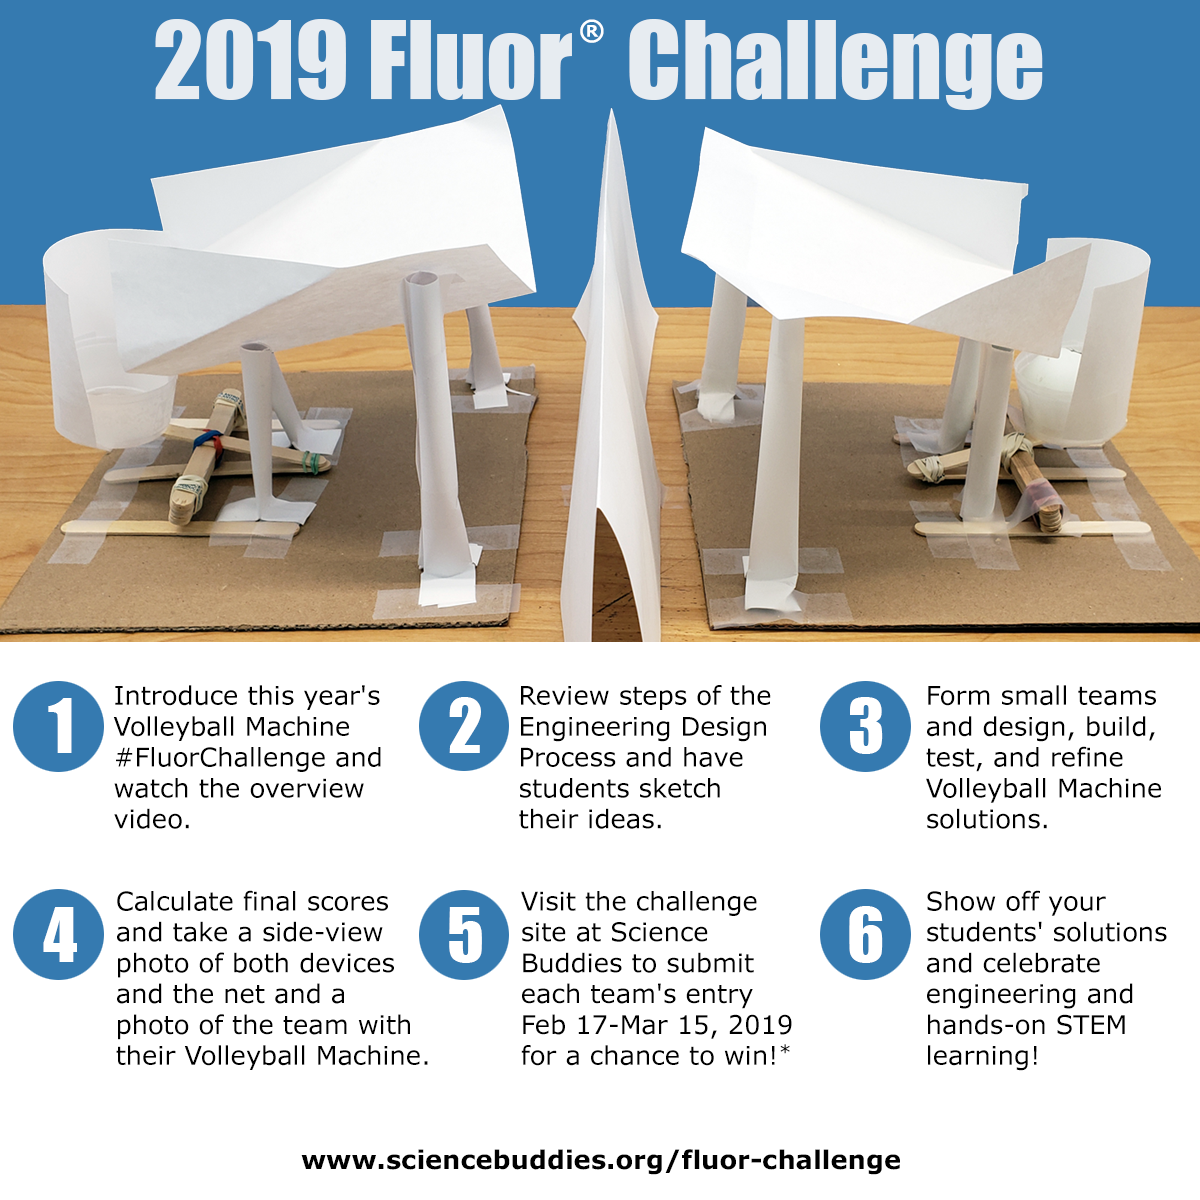 6 Steps to Success with the Fluor Challenge